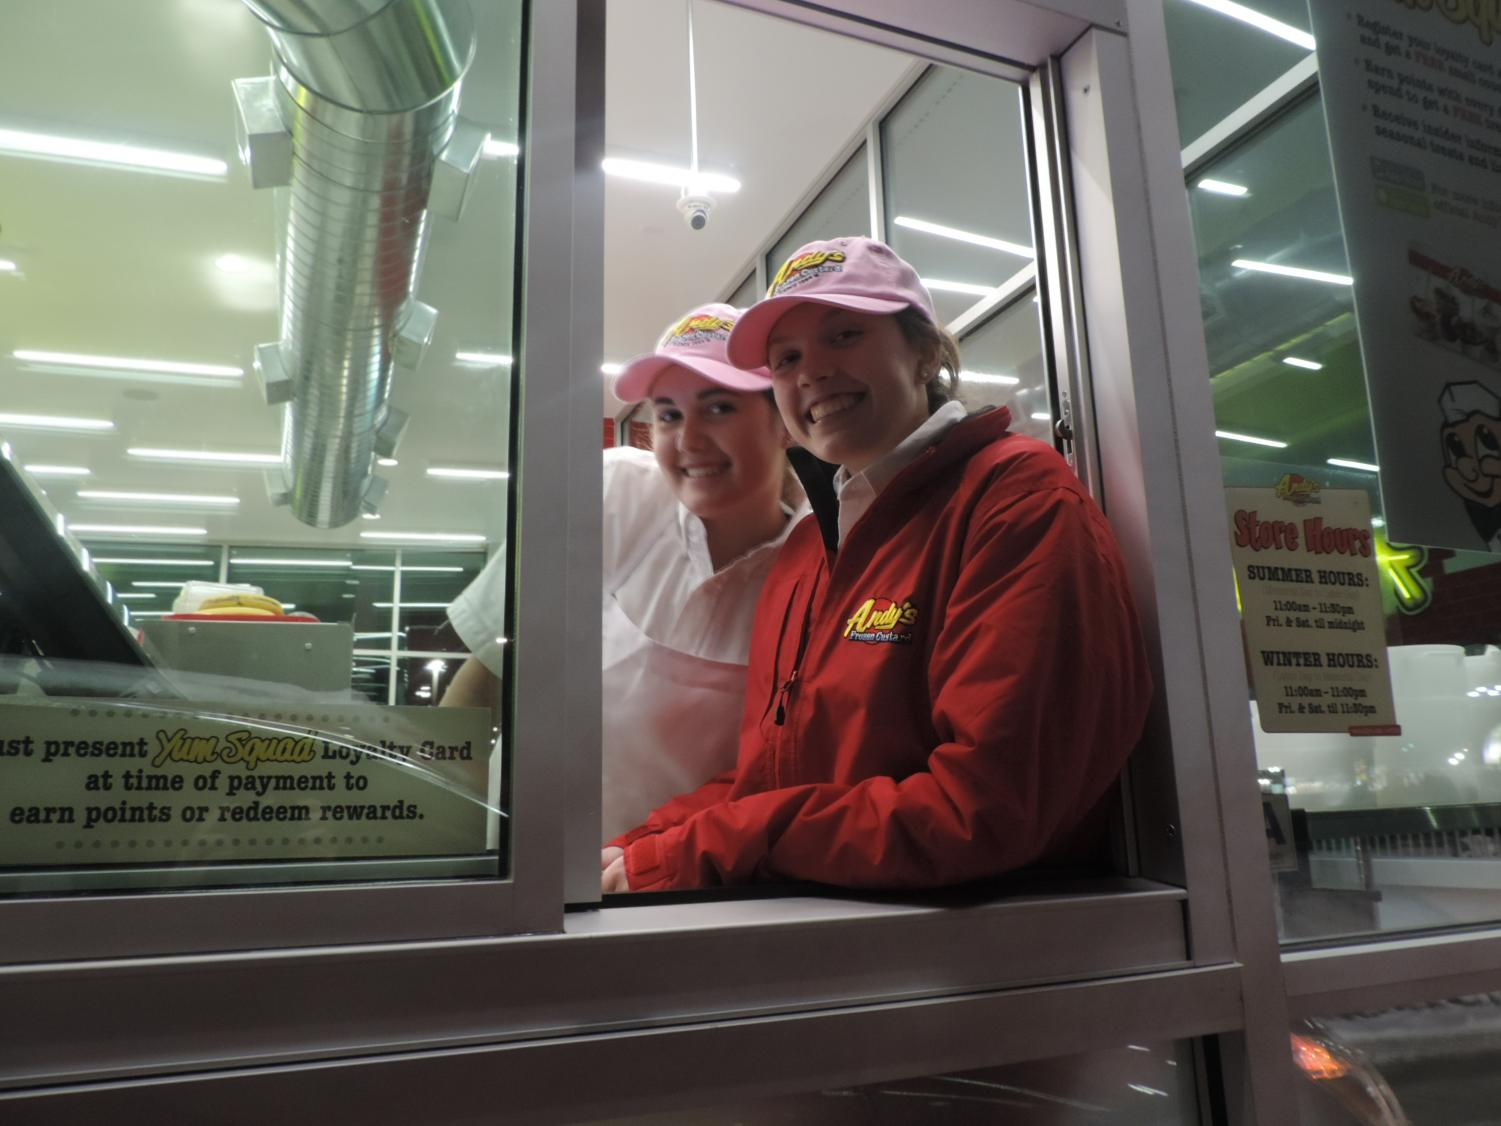 After much anticipation, Andy's Frozen Custard in Maryland Heights opened on Jan. 9, 2018. Parkway North sophomores Abby Merchant and Libby Vetter and other North students take the opening as an opportunity to find work as well as get a treat.